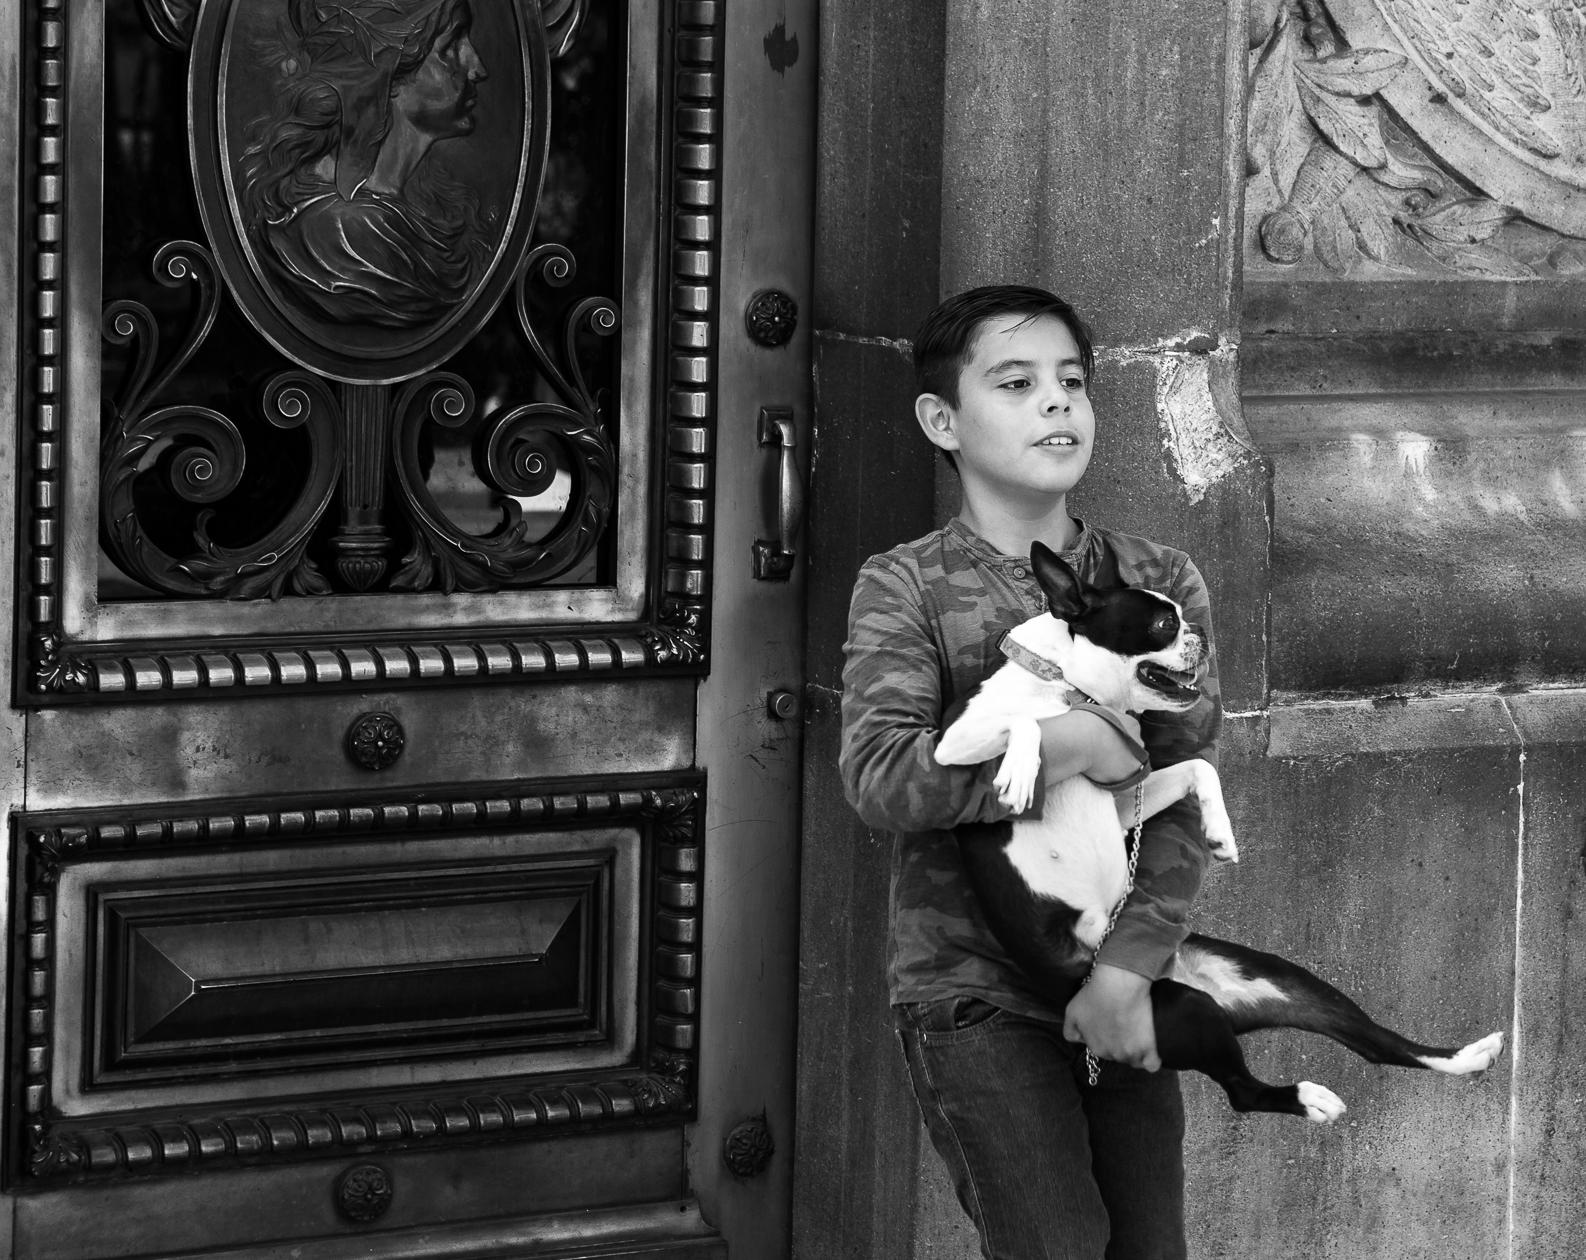 Just a boy and his dog posing for pictures in front of a door by the Angel de la Independecia (Angel of Independence) in Mexico City, Mexico